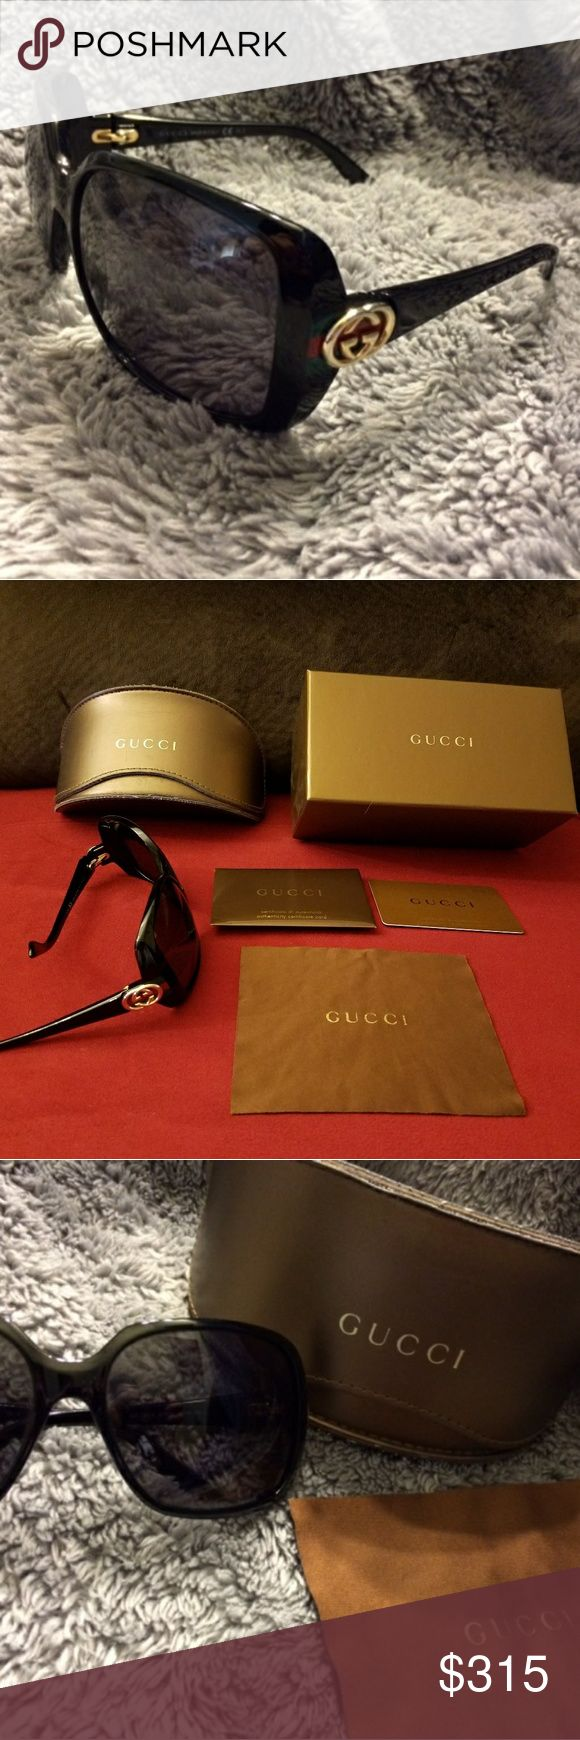 Gucci sunglasses Brand nane:  Gucci   Comes with: Gucci box, Gucci case, Gucci sunglasses, Gucci cloth, and Gucci certificate of authenticity  100% authentic!   Black frames with green / red / gold accents  Dark tint (perfect! )  Everything is in perfect condition (the case has minor scratches on it ) Gucci Accessories Sunglasses